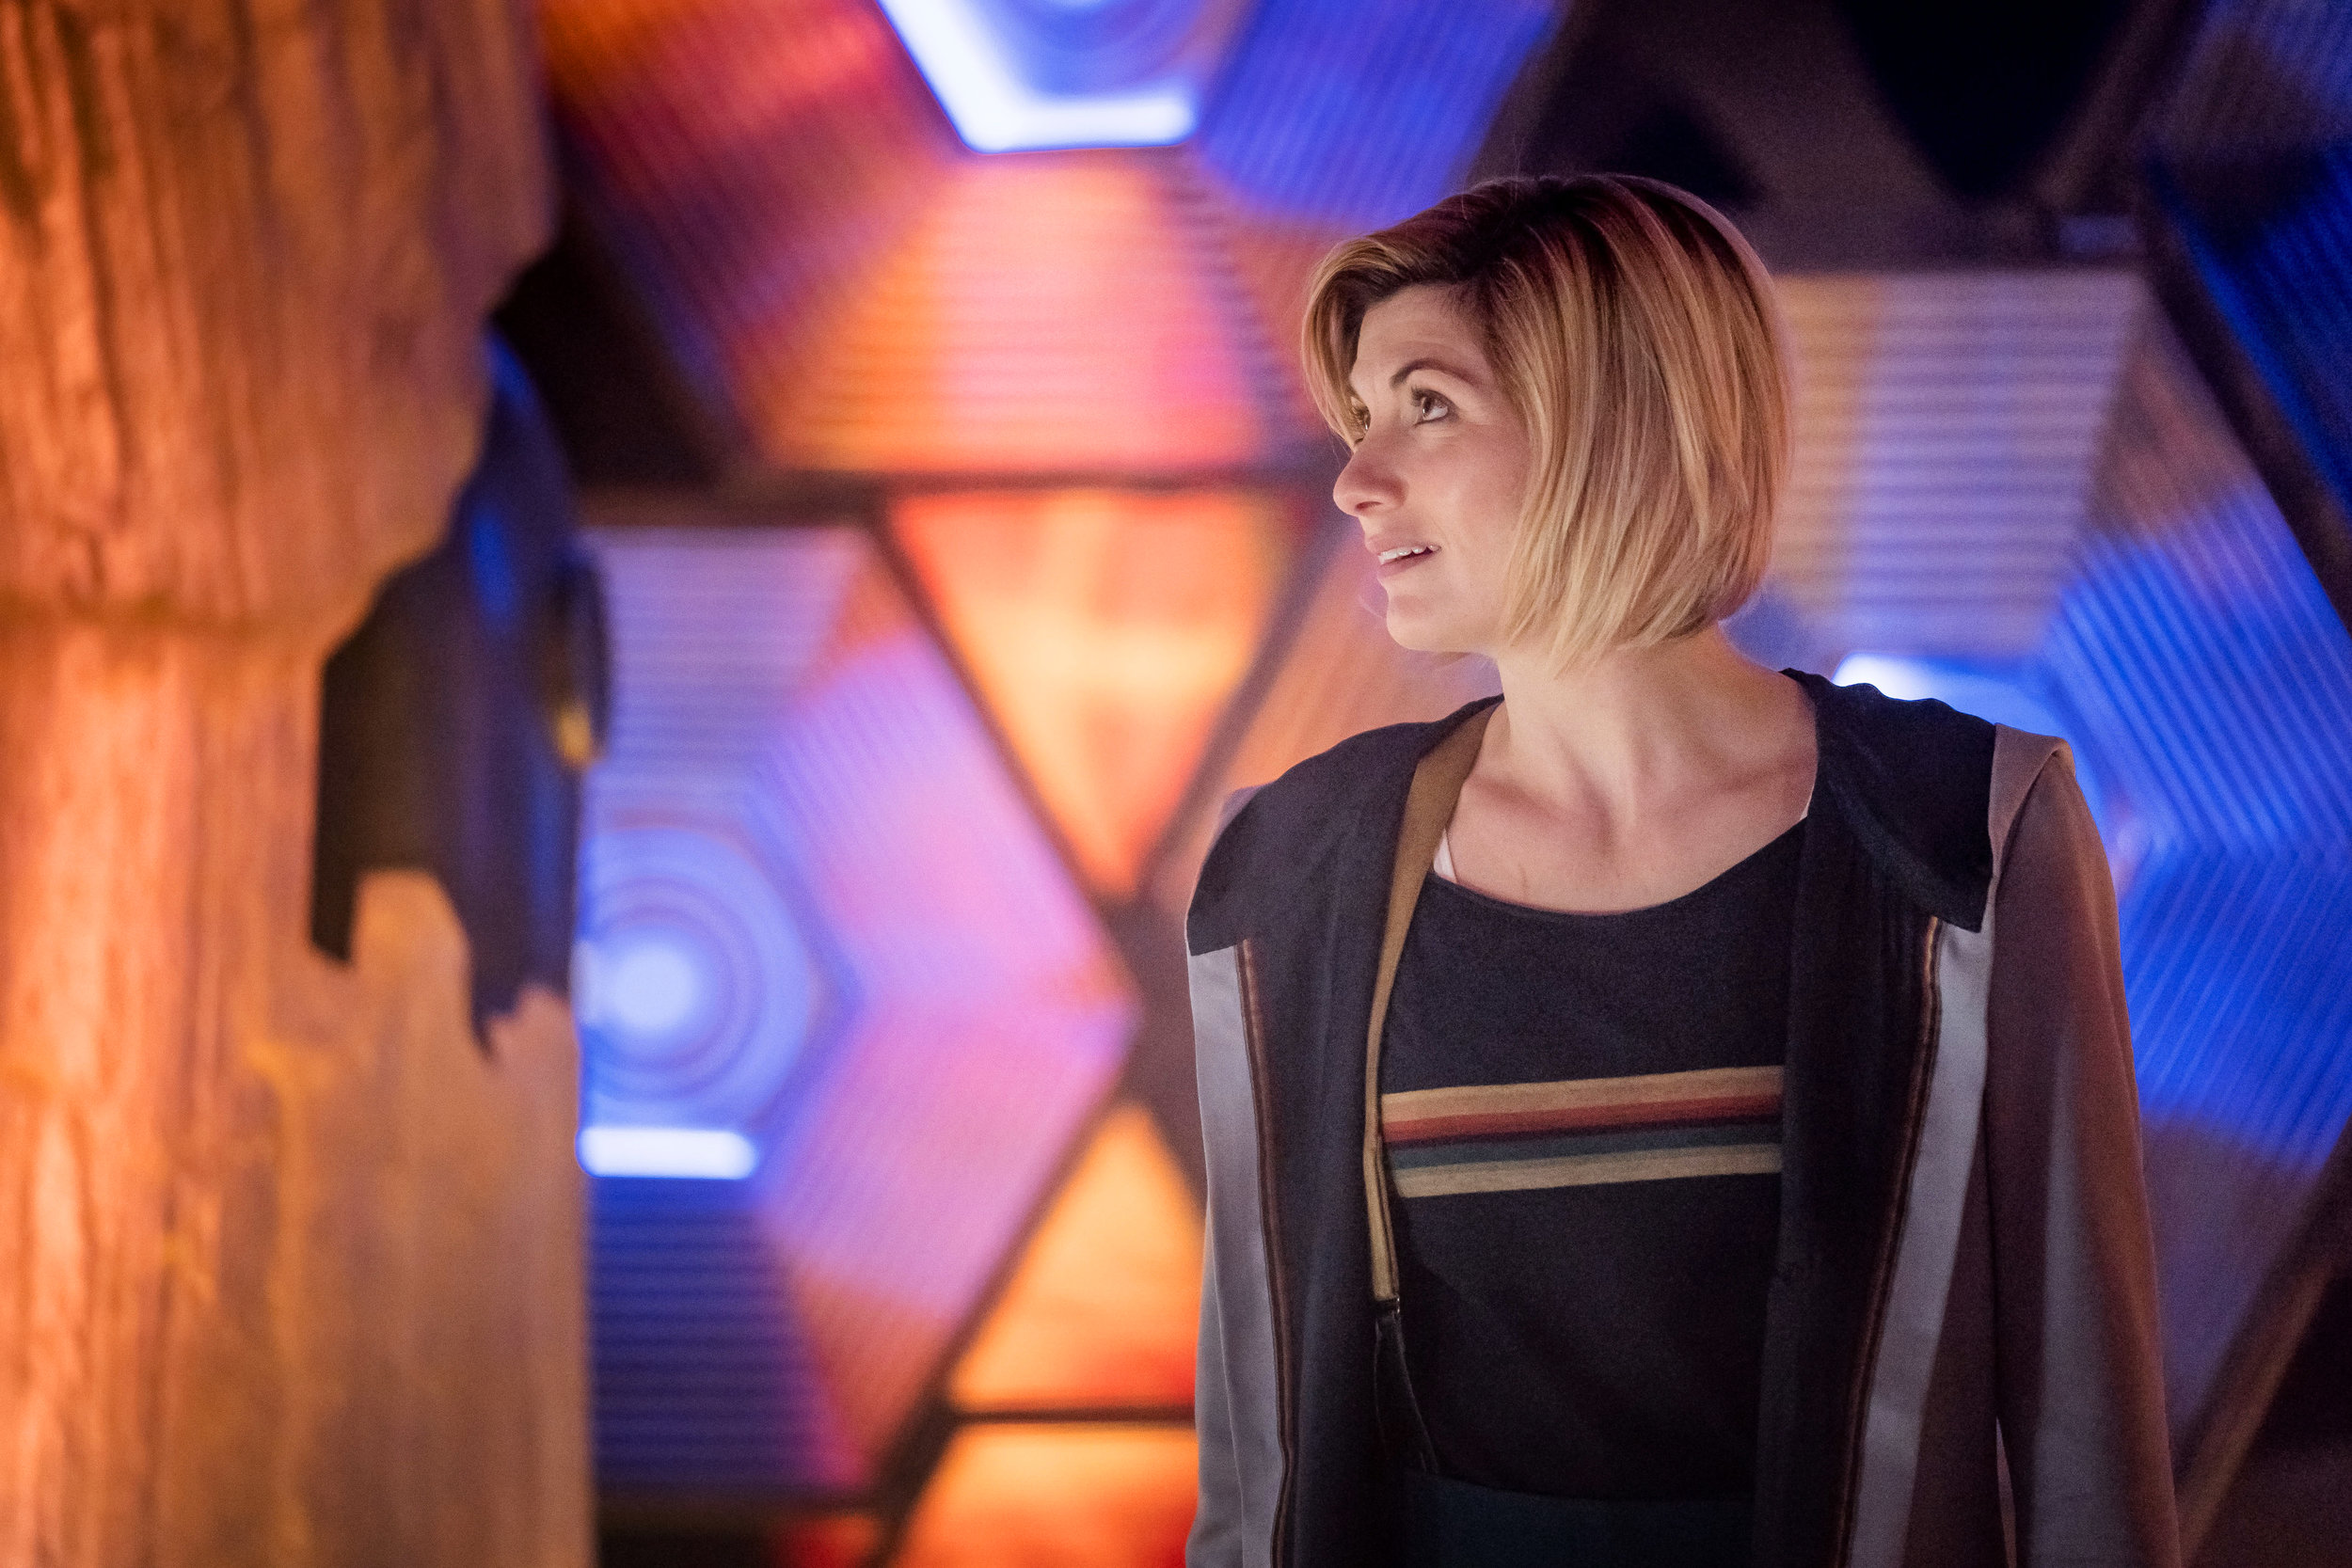 Jodie Whittaker plays the Doctor, trapped at the Edge of Time